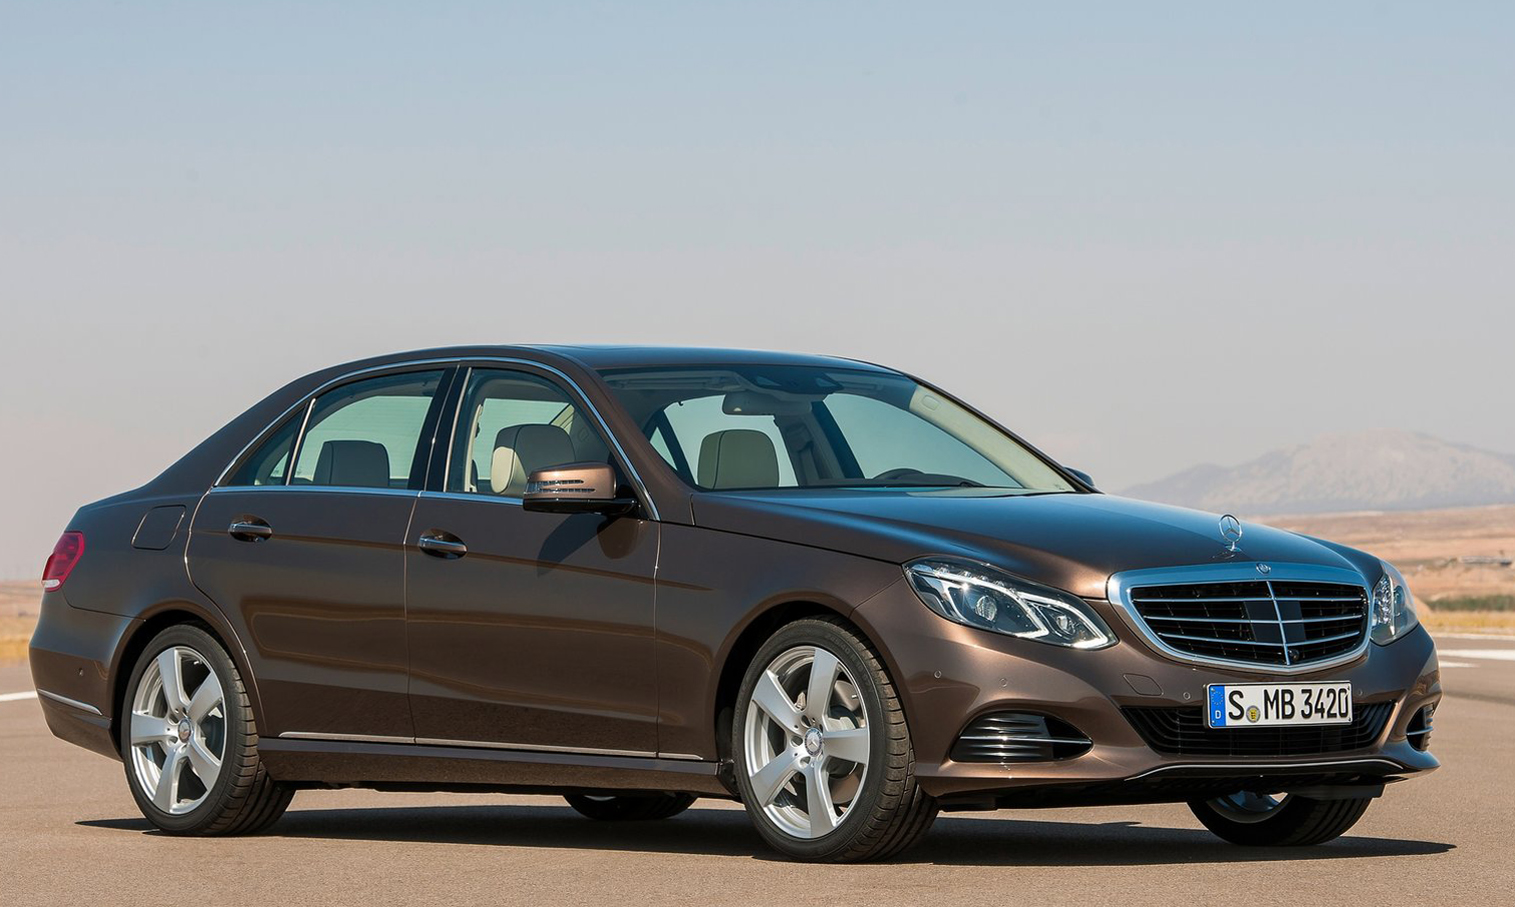 Mercedes-Benz E-Class: Transporting the vehicle